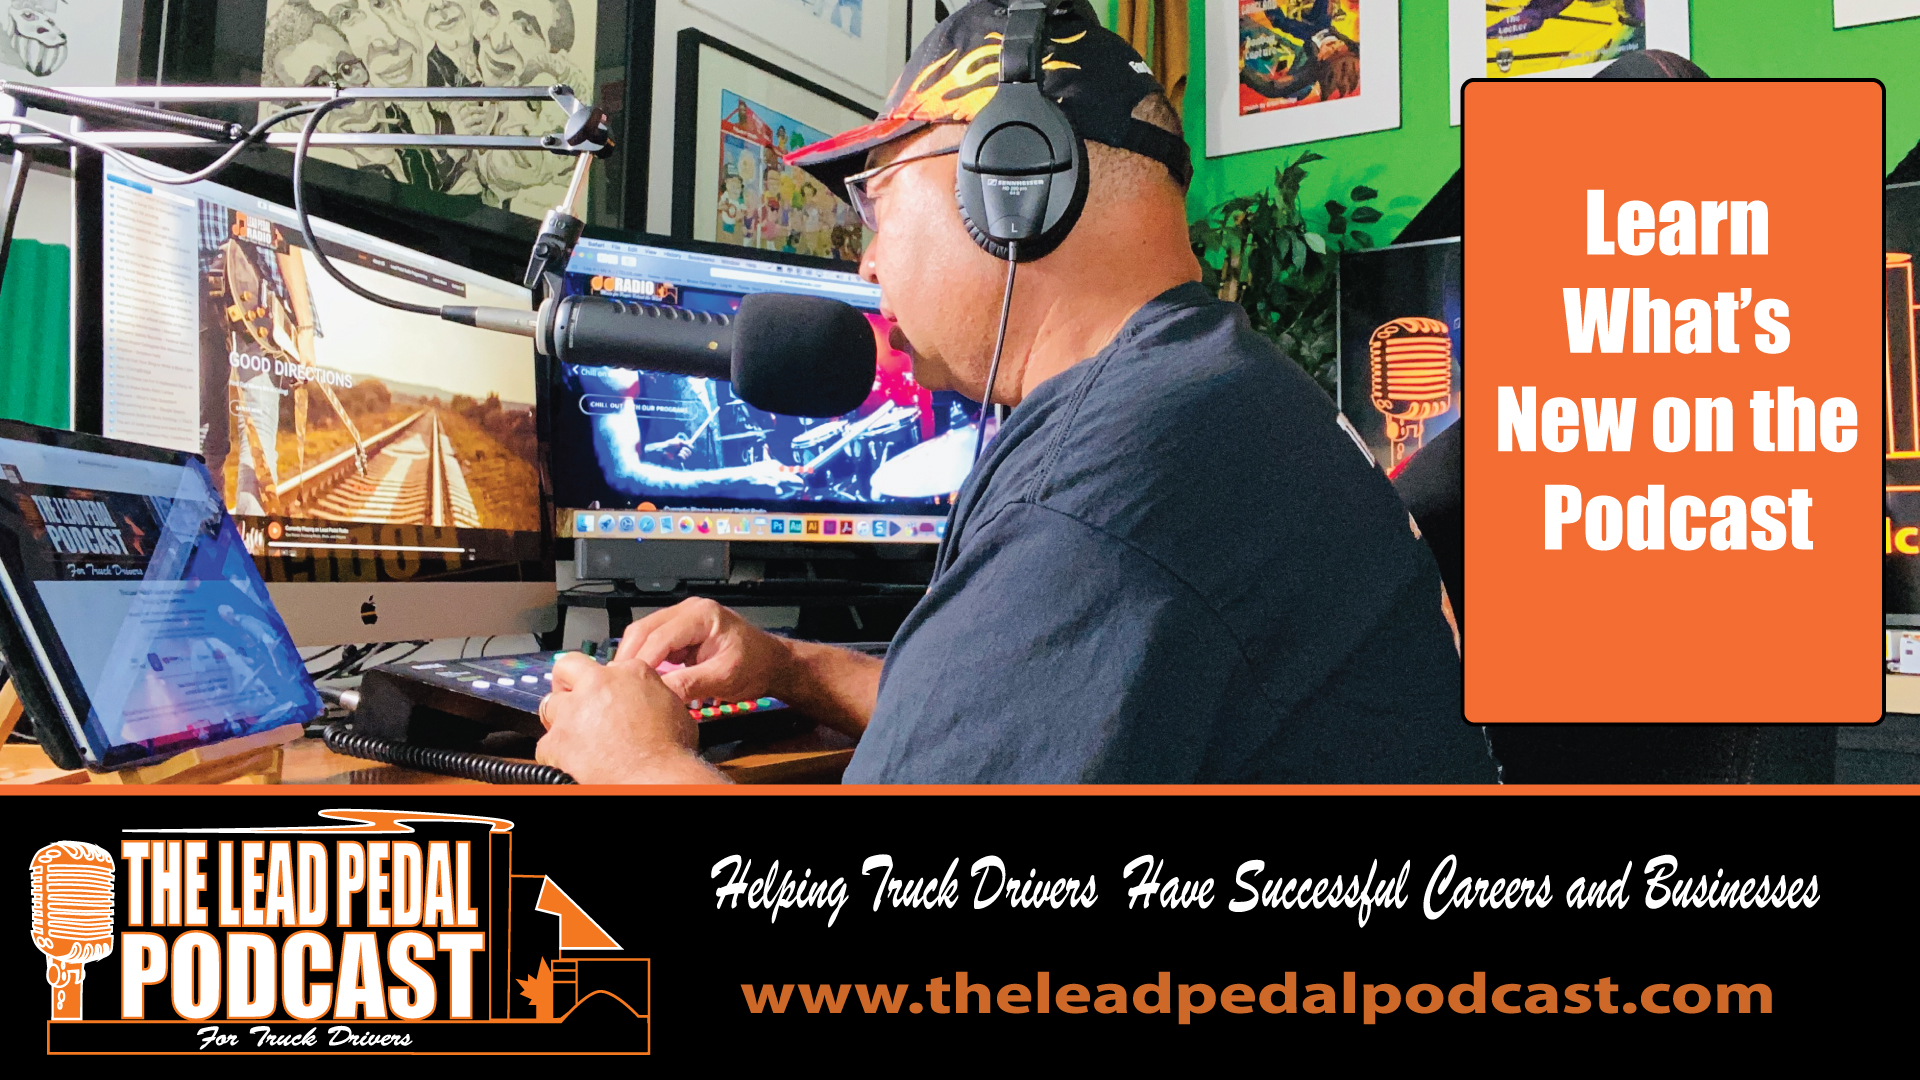 Whats New on the Lead Pedal Podcast